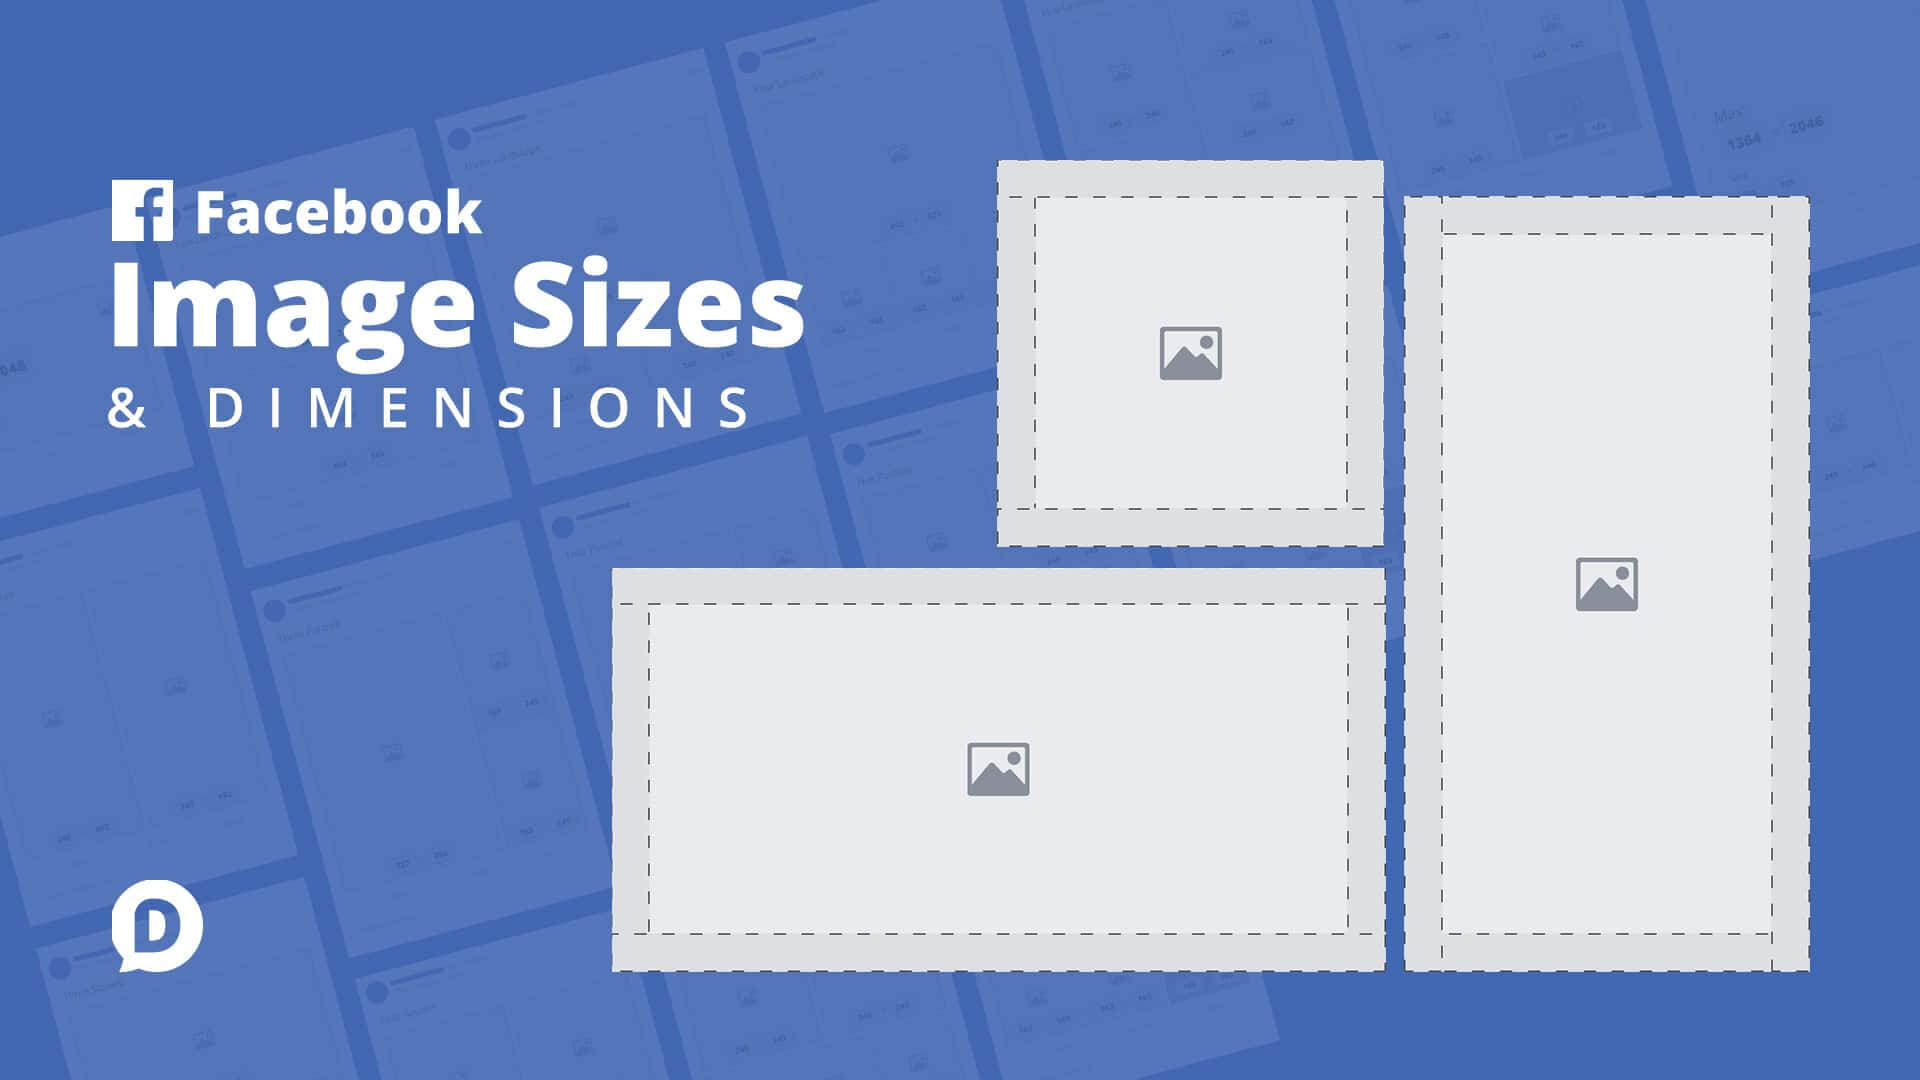 019 Facebook Image Sizes 1920X1080 Page Banner Template Inside Sweet 16 Banner Template